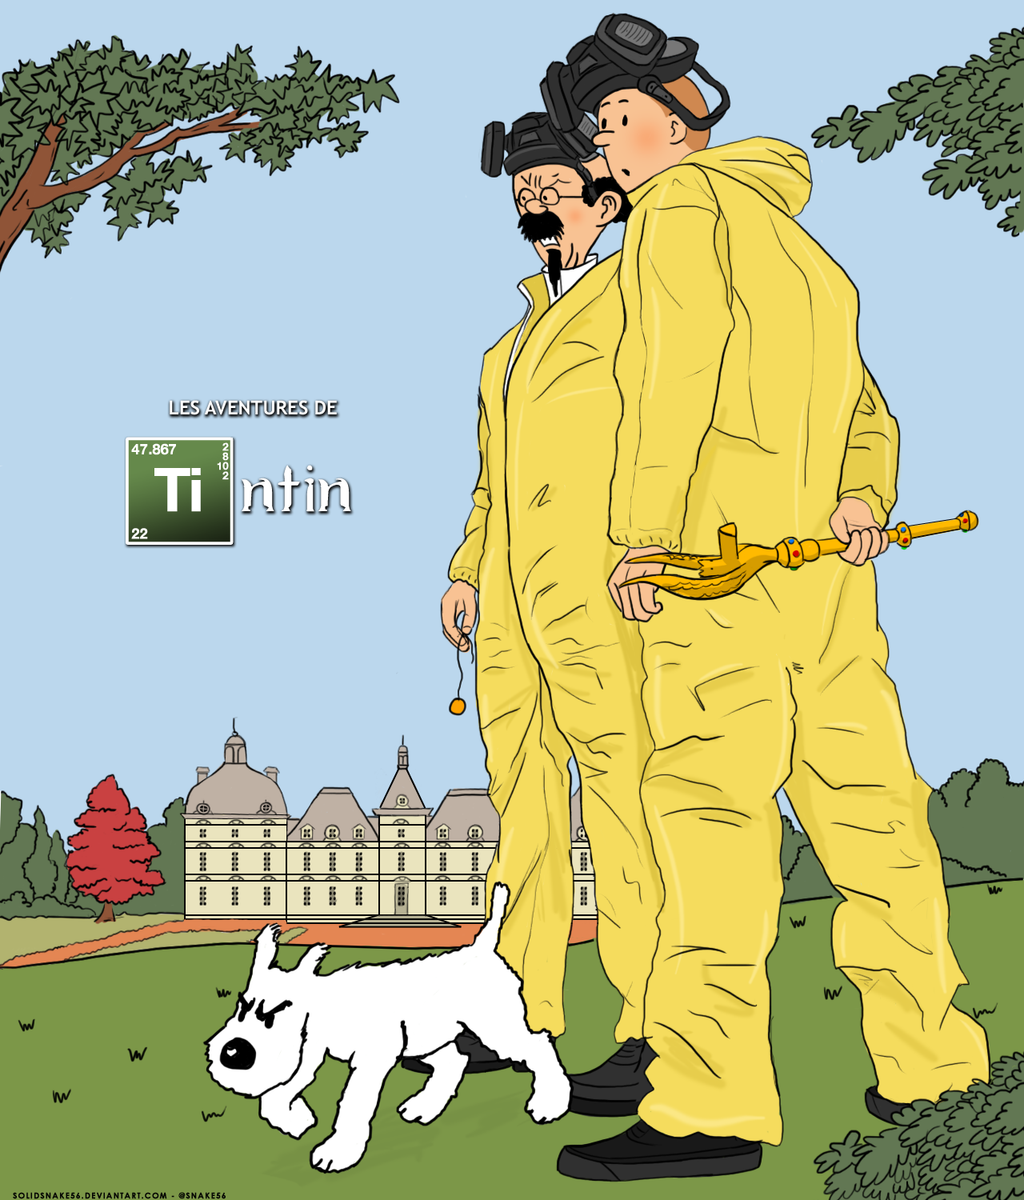 Breaking Bad - The Adventures of Tintin by SolidSnake56